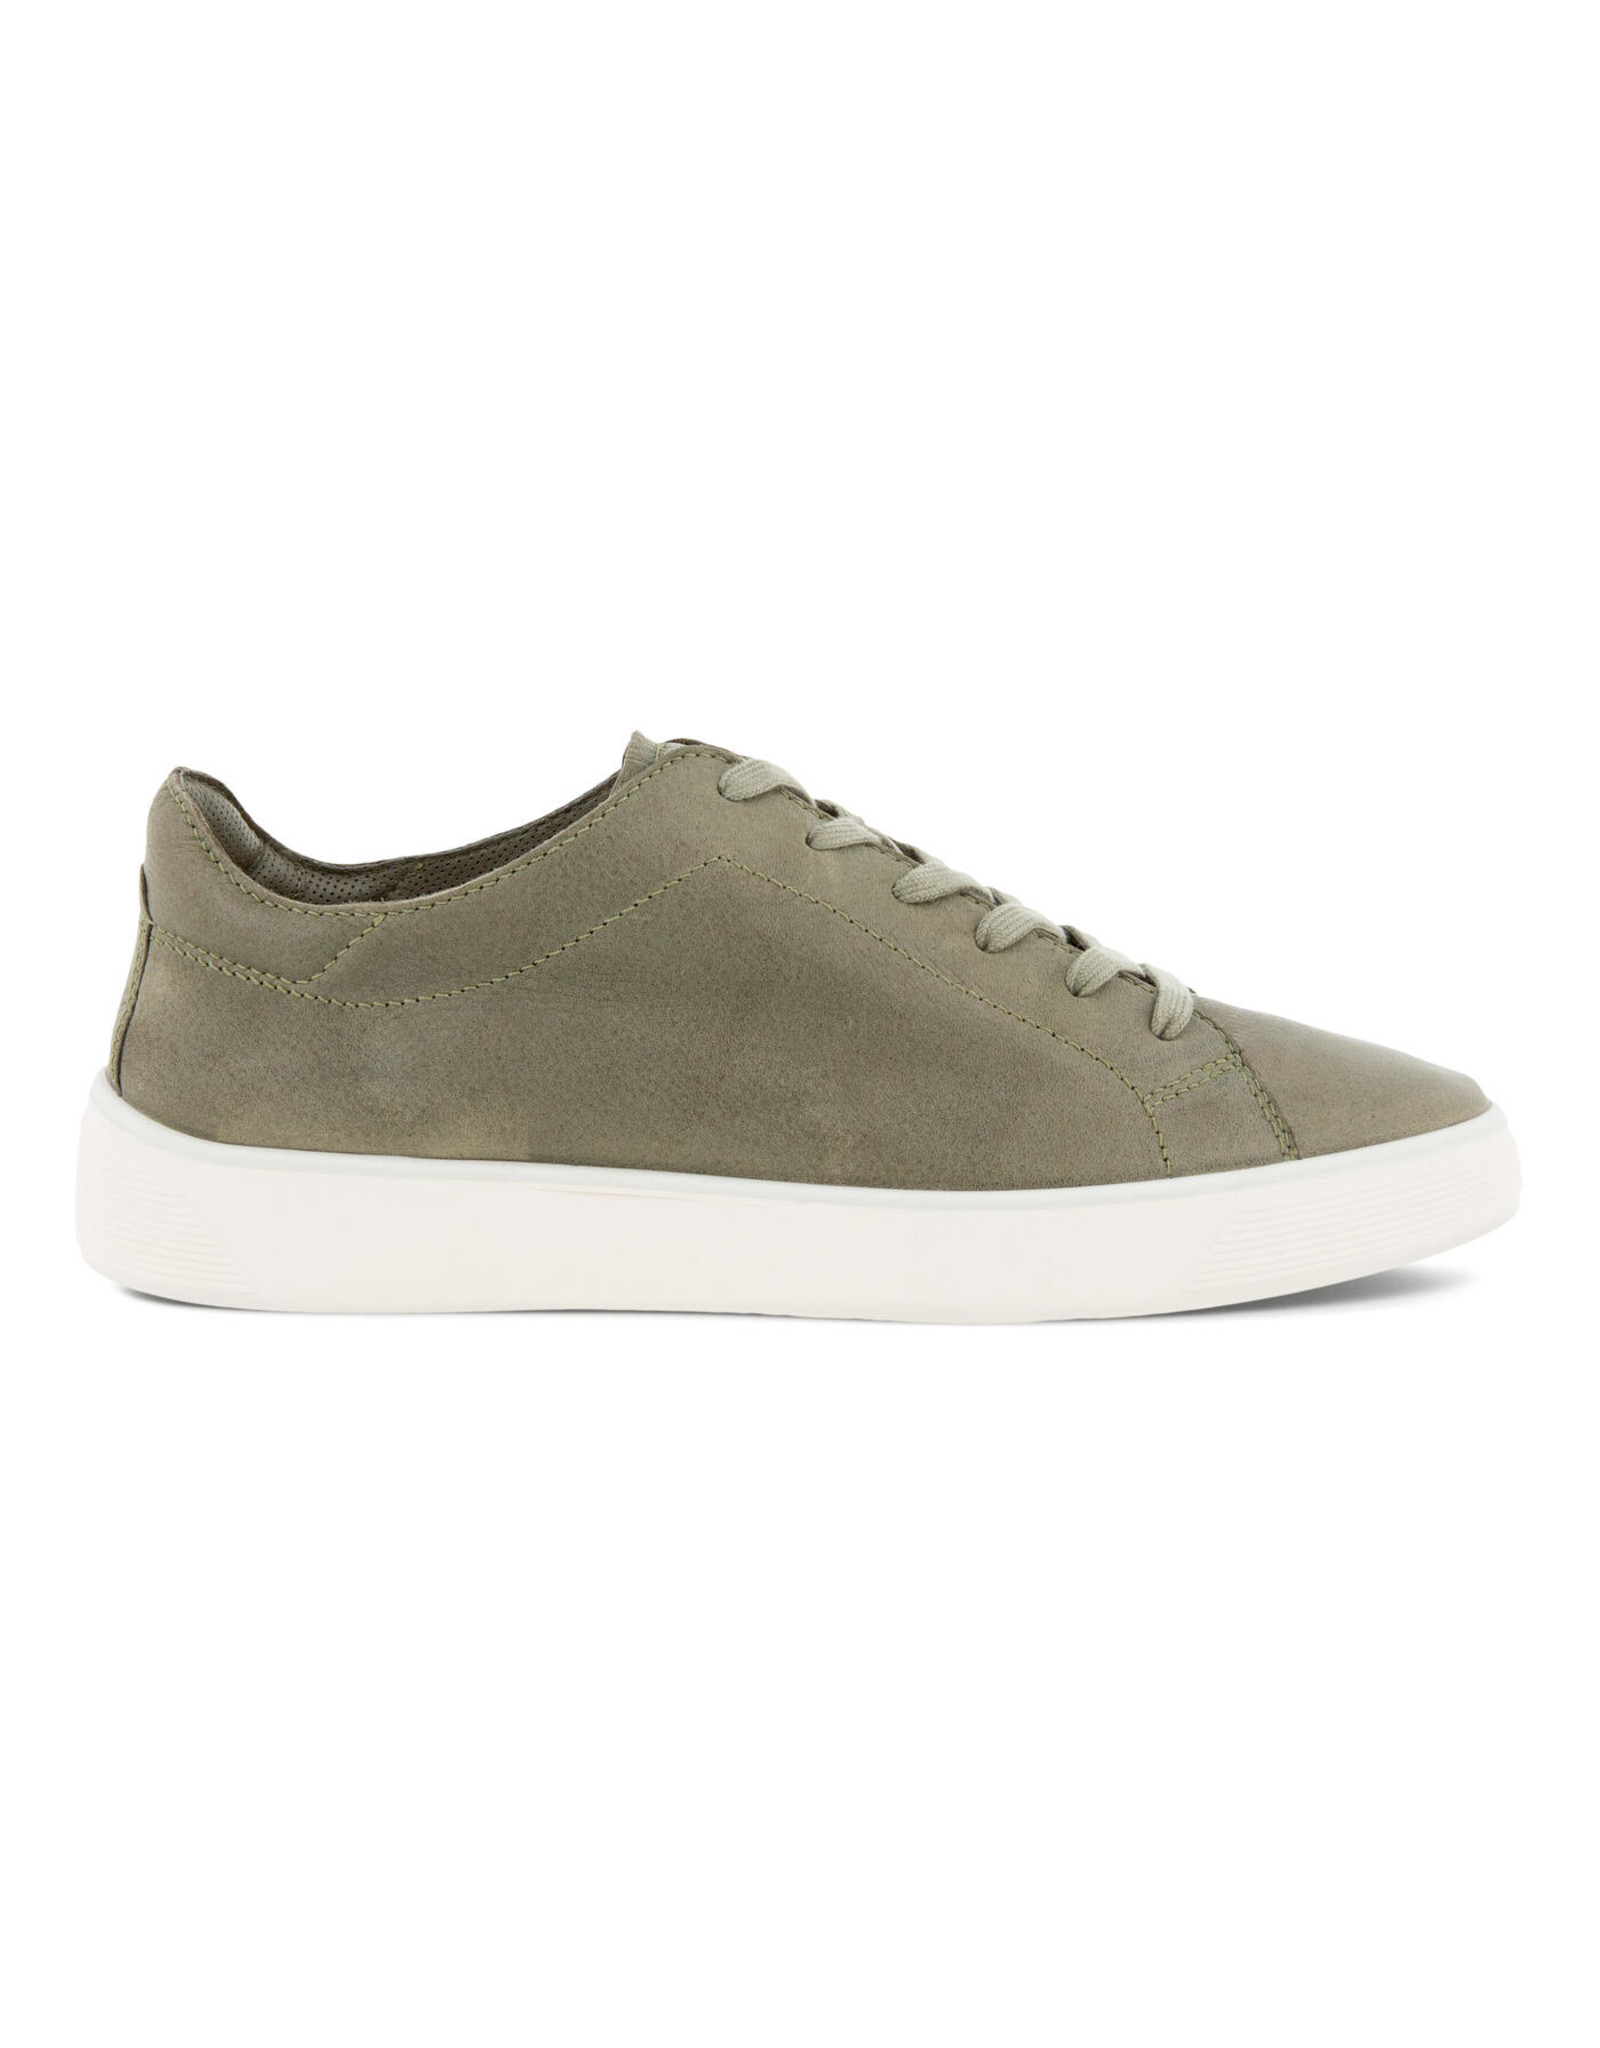 ECCO MEN'S STREET TRAY LACED SHOES-VETIVER